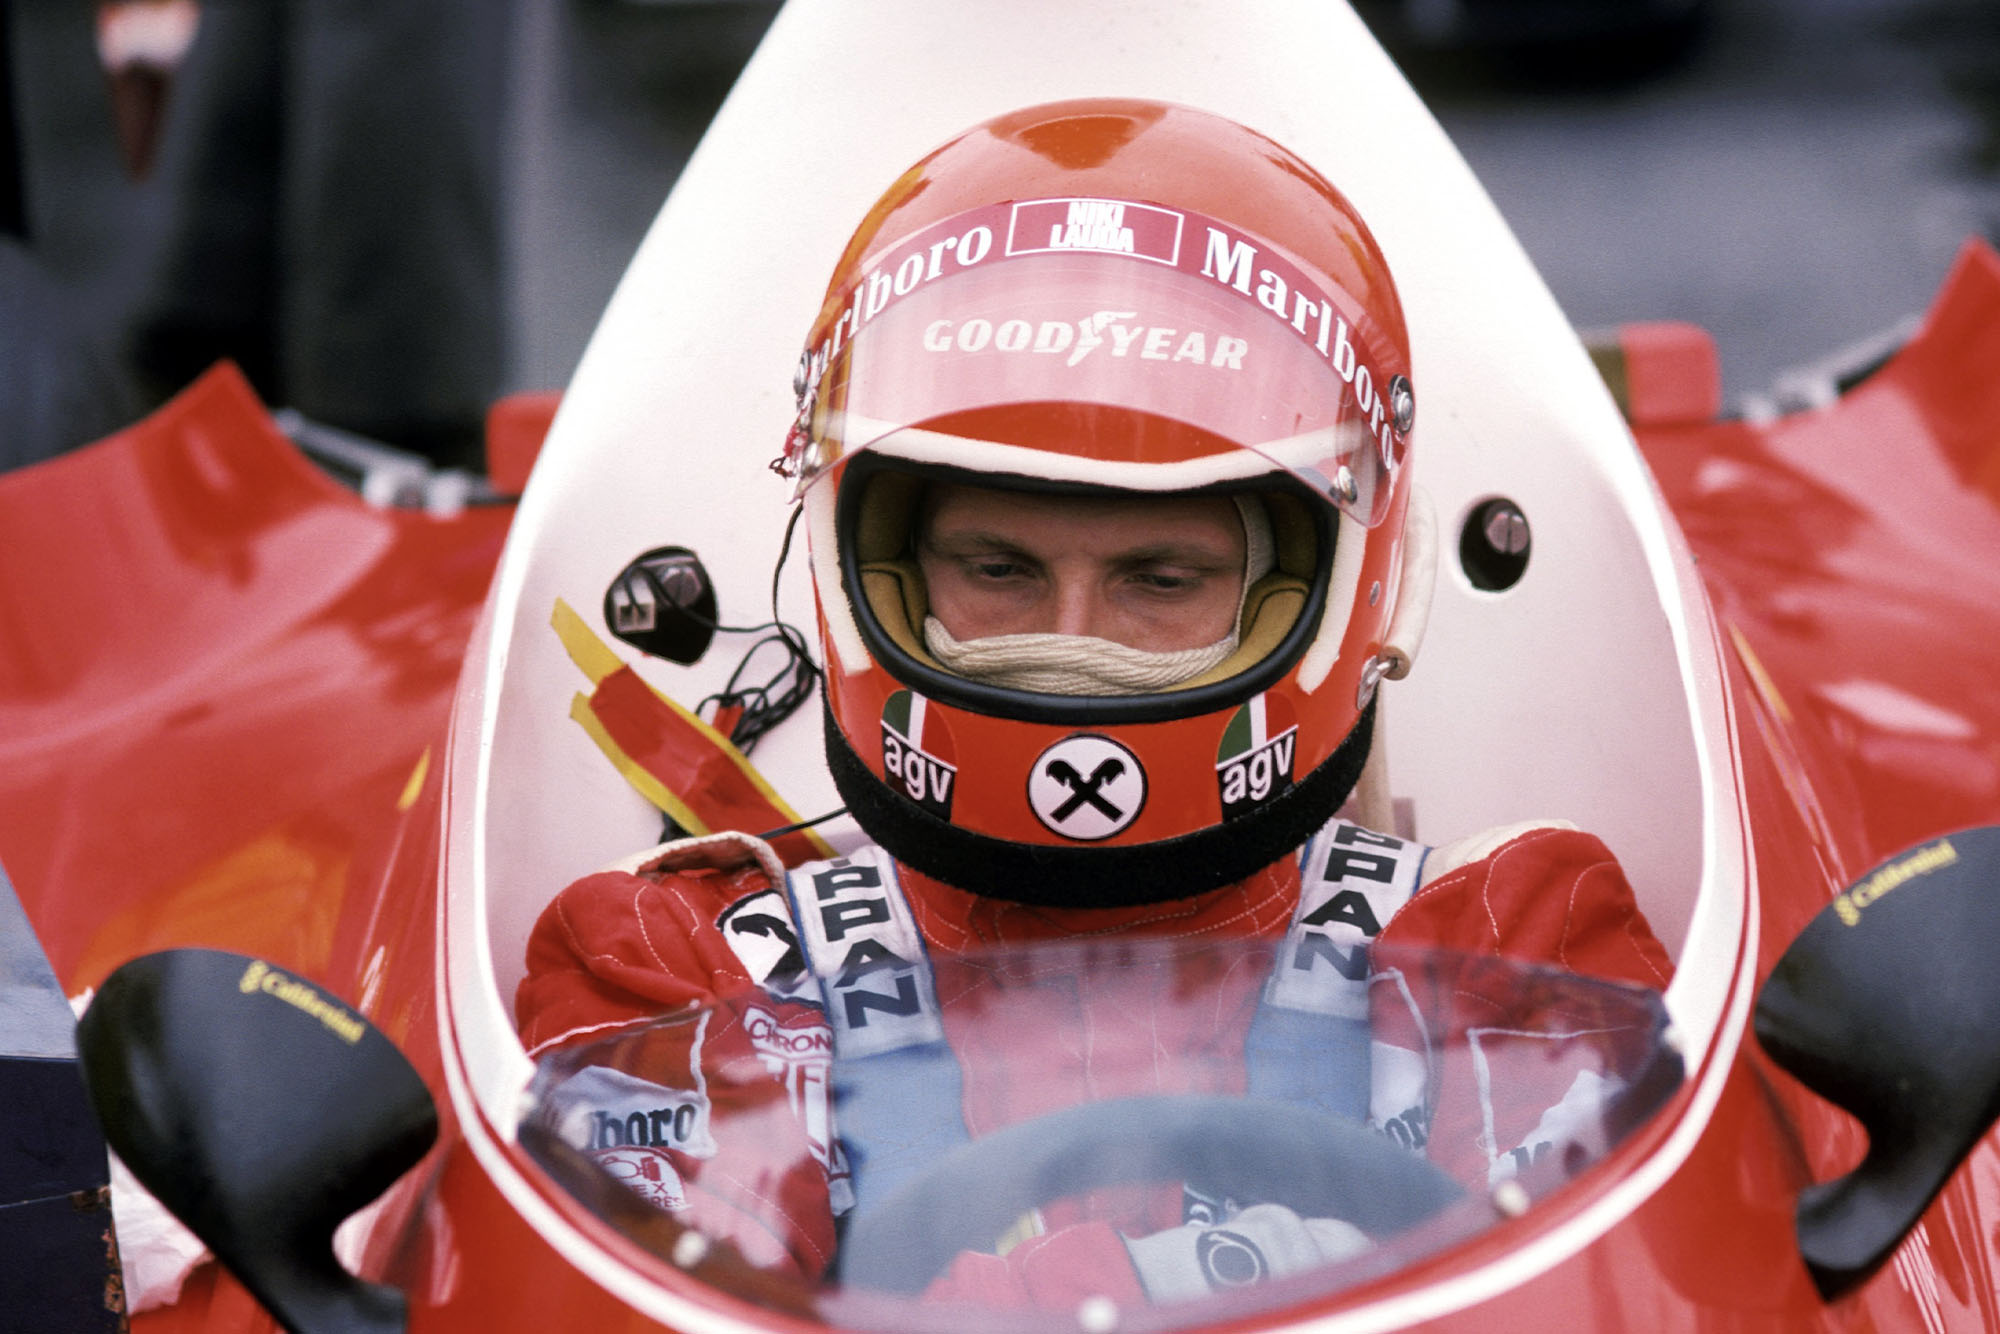 Niki Lauda sits in his Ferrari at the 1975 Dutch Grand Prix, Zandvoort.